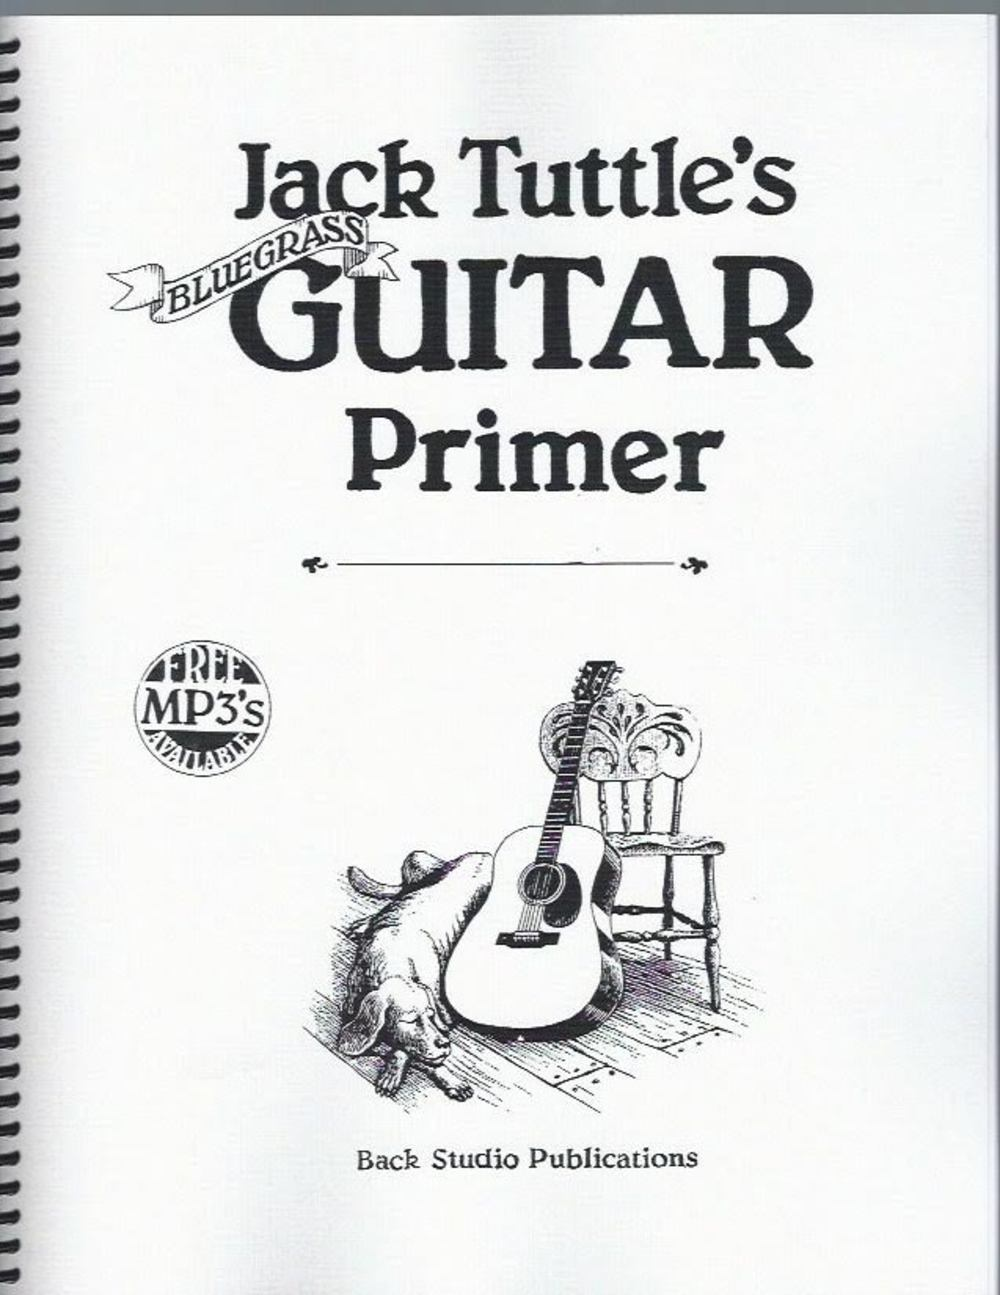 Jack Tuttle's Bluegrass Guitar Primer